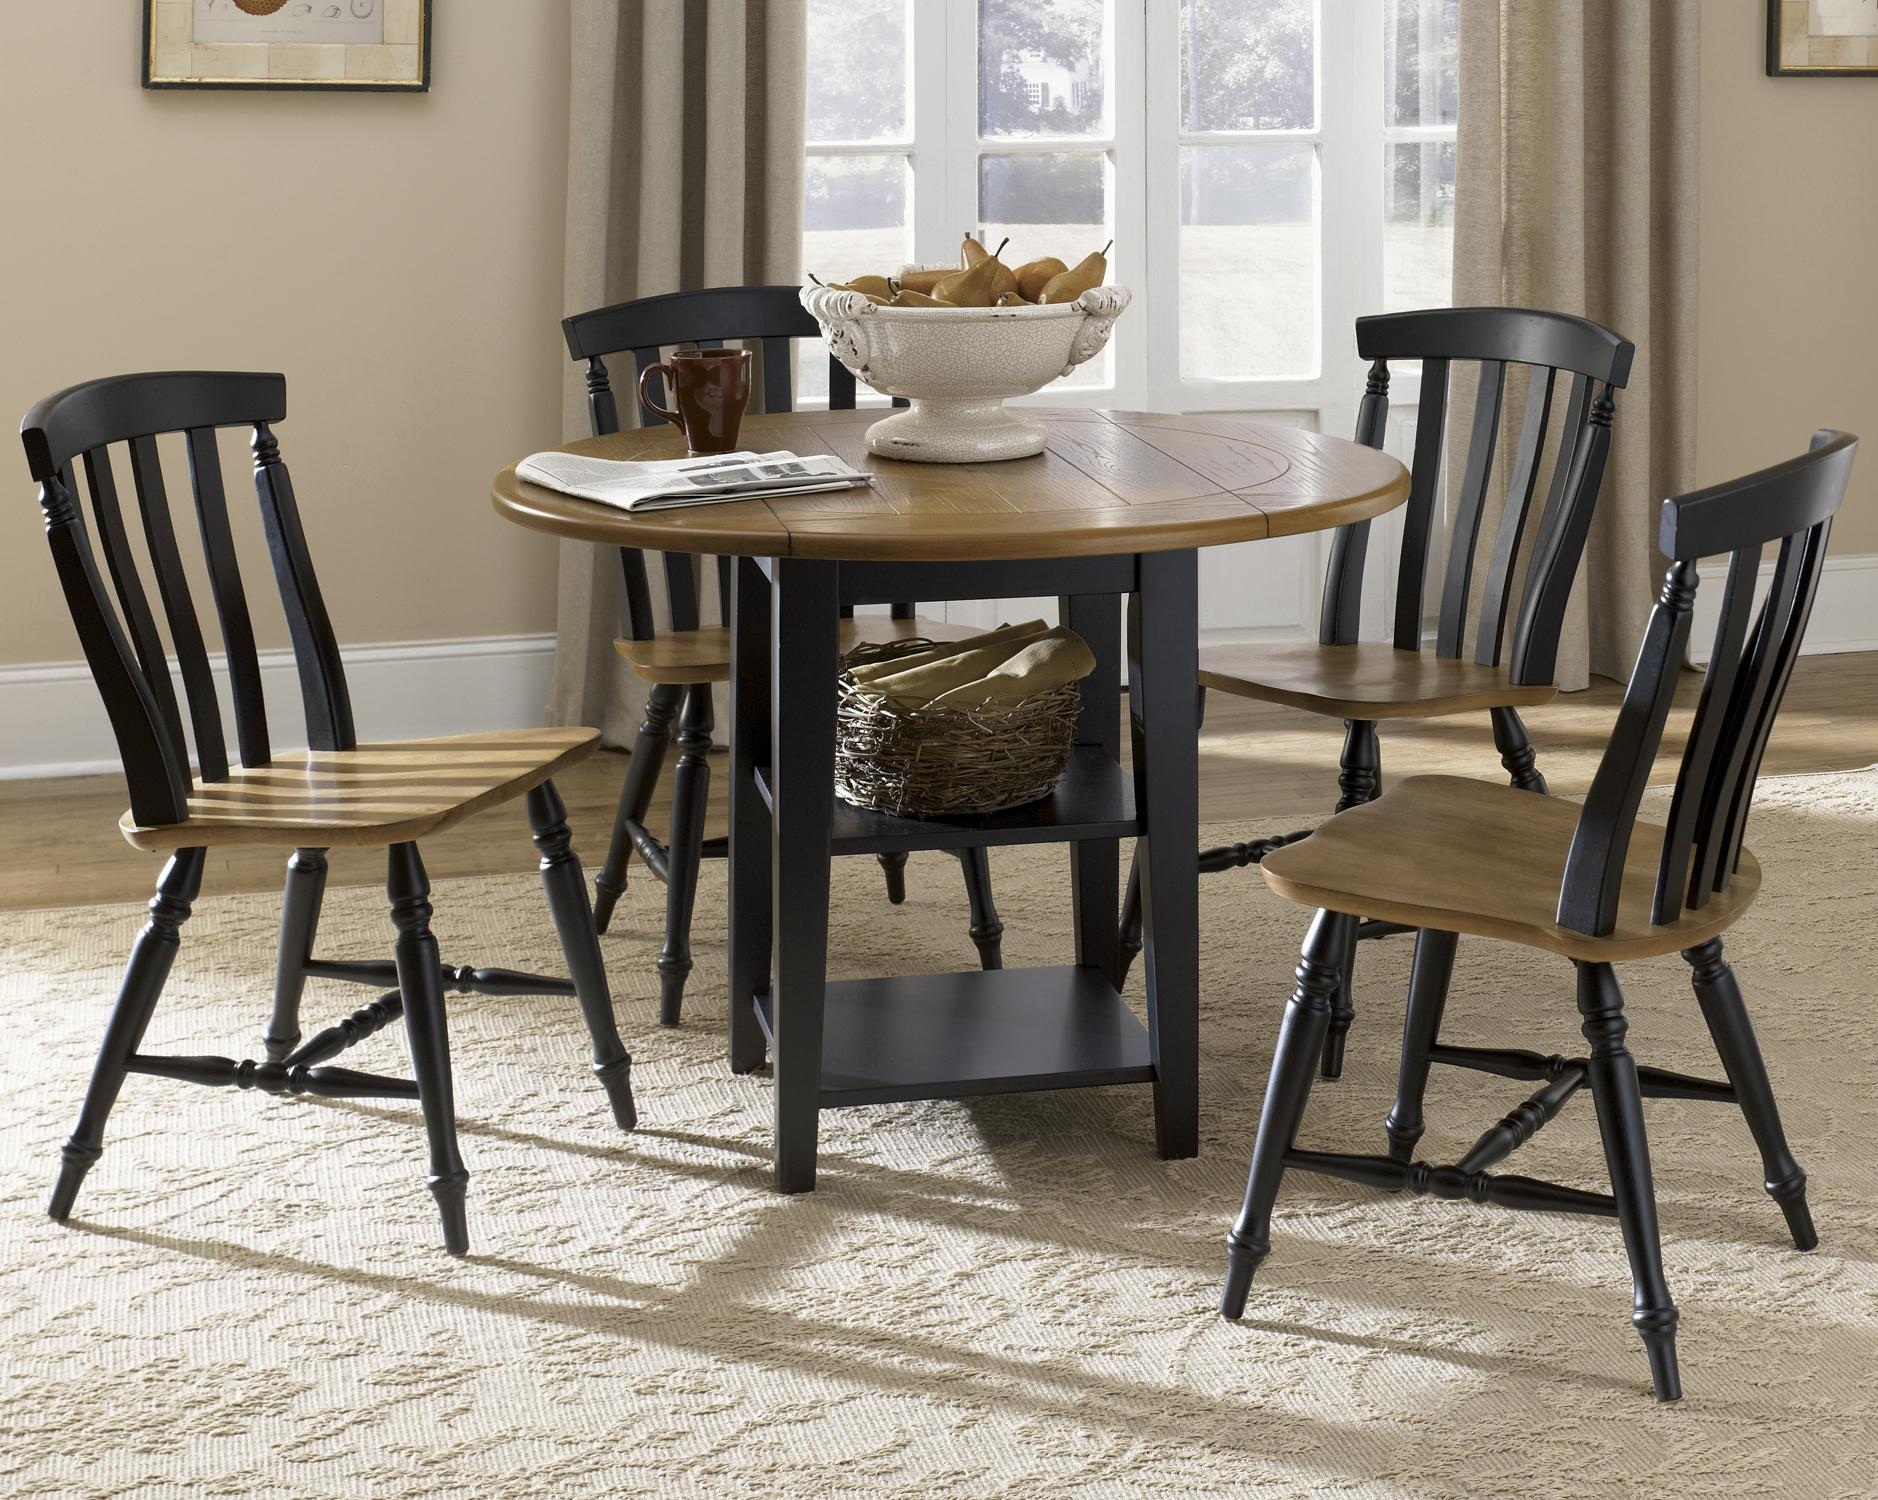 drop leaf table set Five Piece Drop Leaf Table and Slat Back Chairs Set by Liberty  drop leaf table set